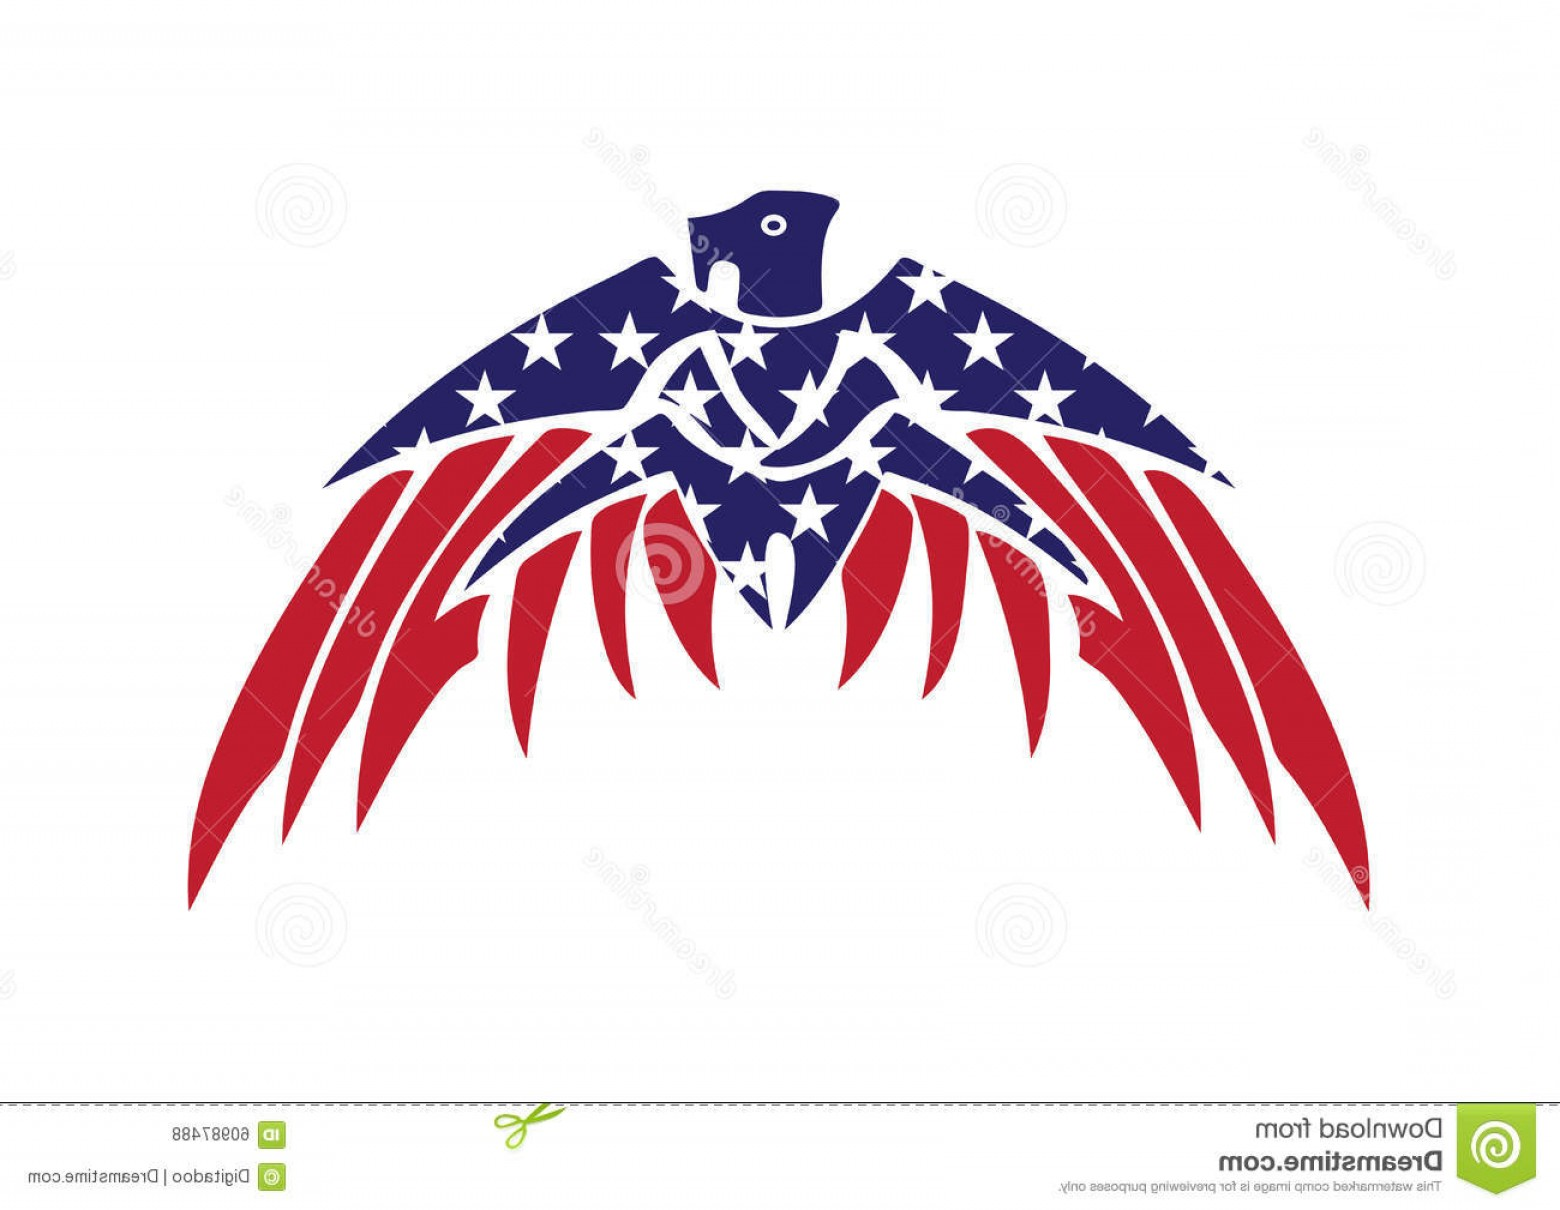 Patriotic Bald Eagle Vector: Stock Illustration Usa Flag Patriotic Eagle Bald Hawk Vector Logo Object Image